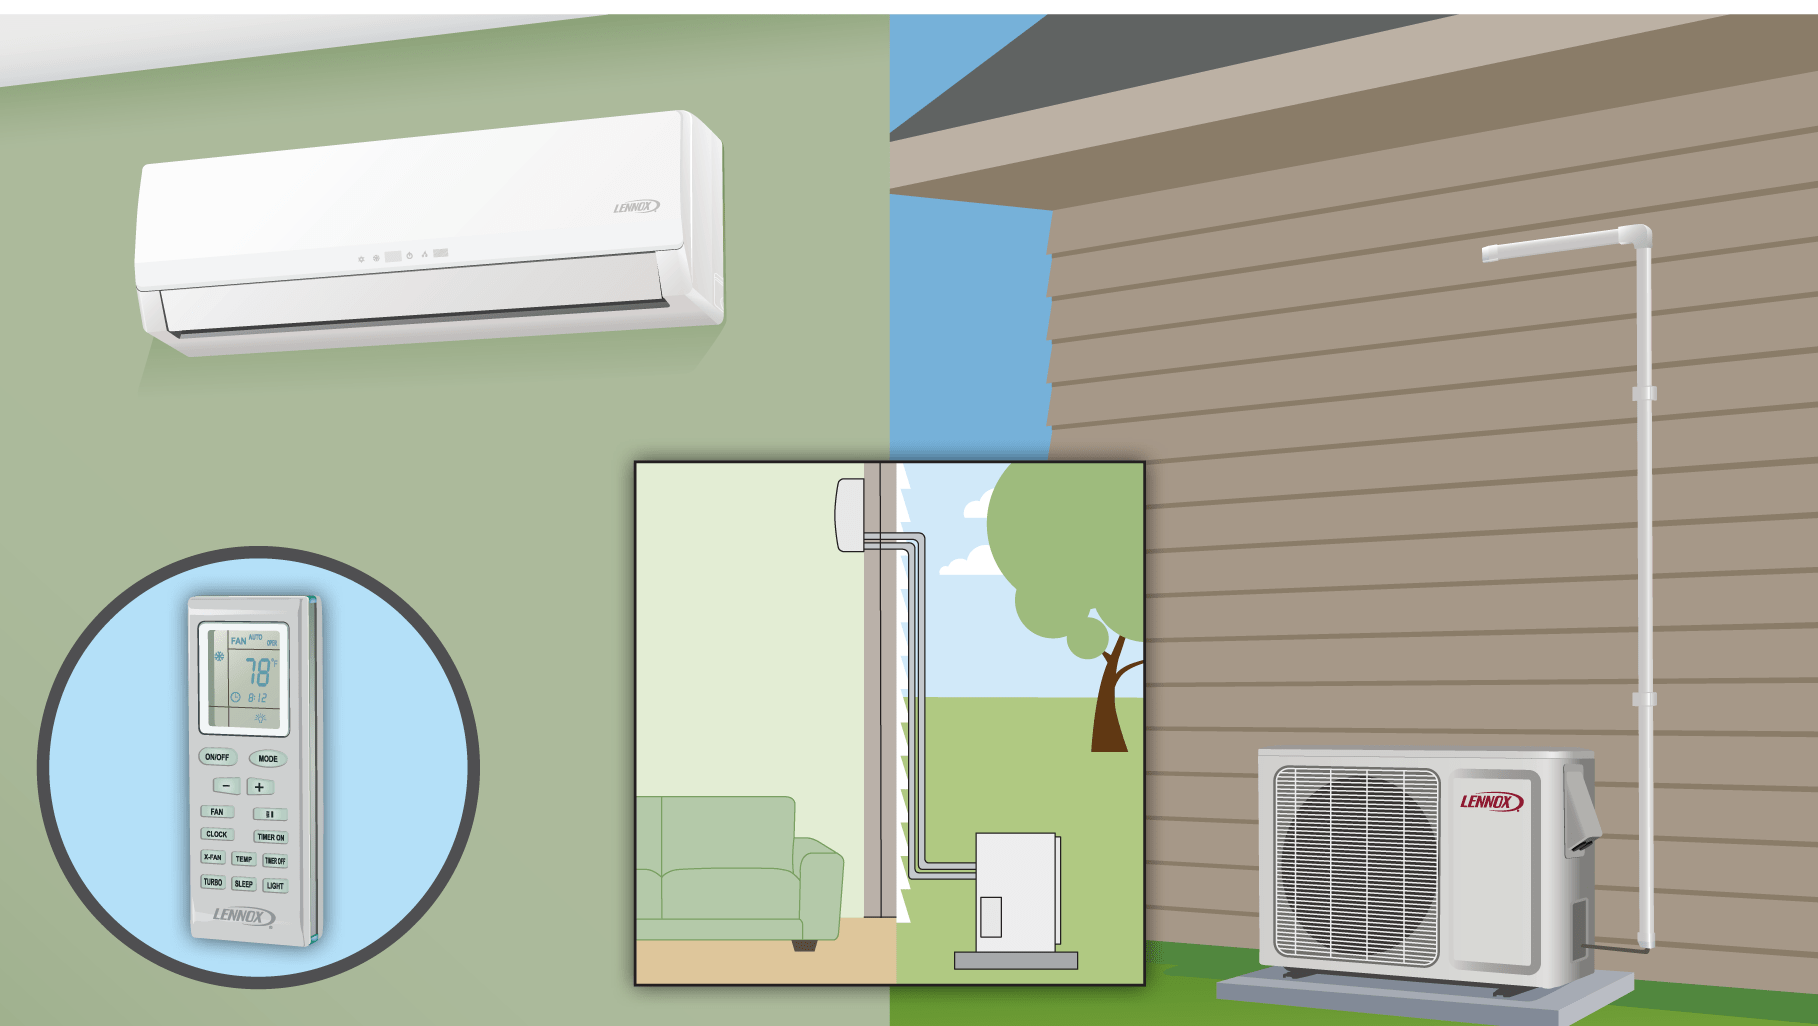 Home Air Conditioning Not Turning On